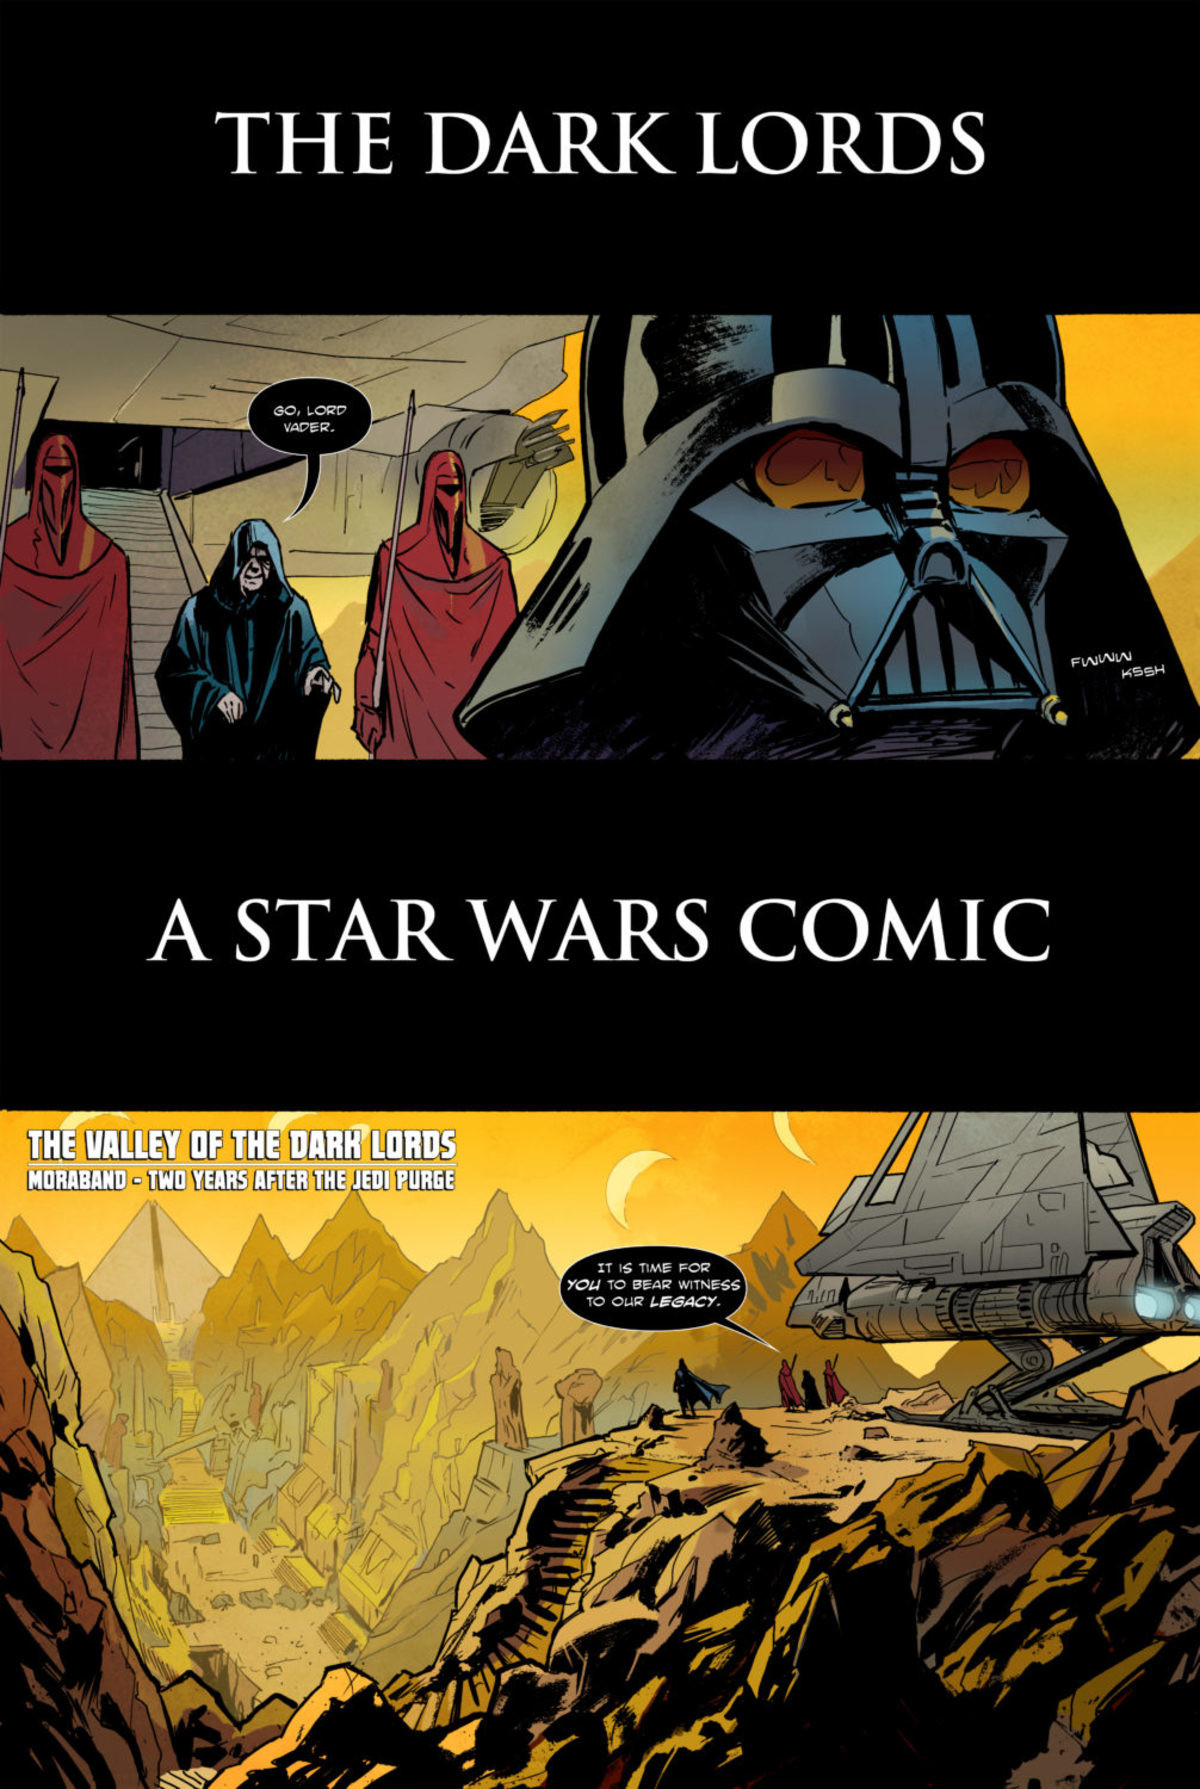 The Dark Lords. .. did vader just kill a of sith just because they disagreed with him?